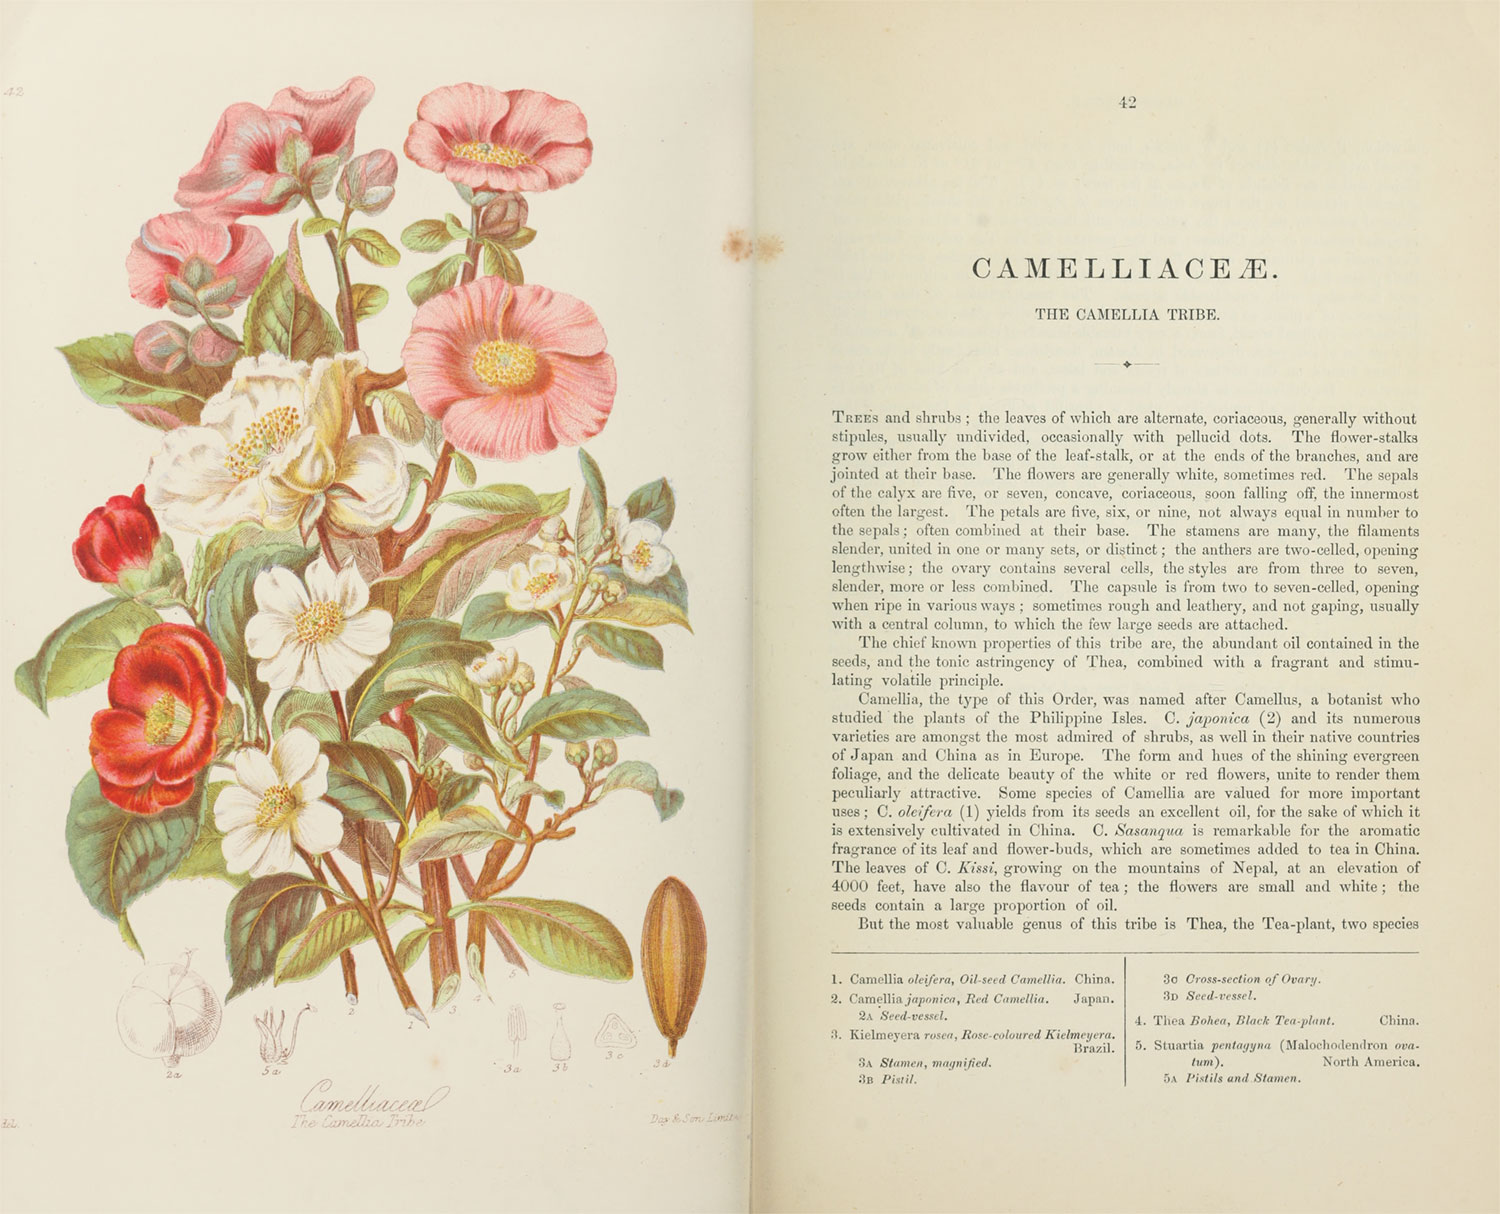 Scans of the original illustration and description of Camelliaceæ, the Camellia Tribe